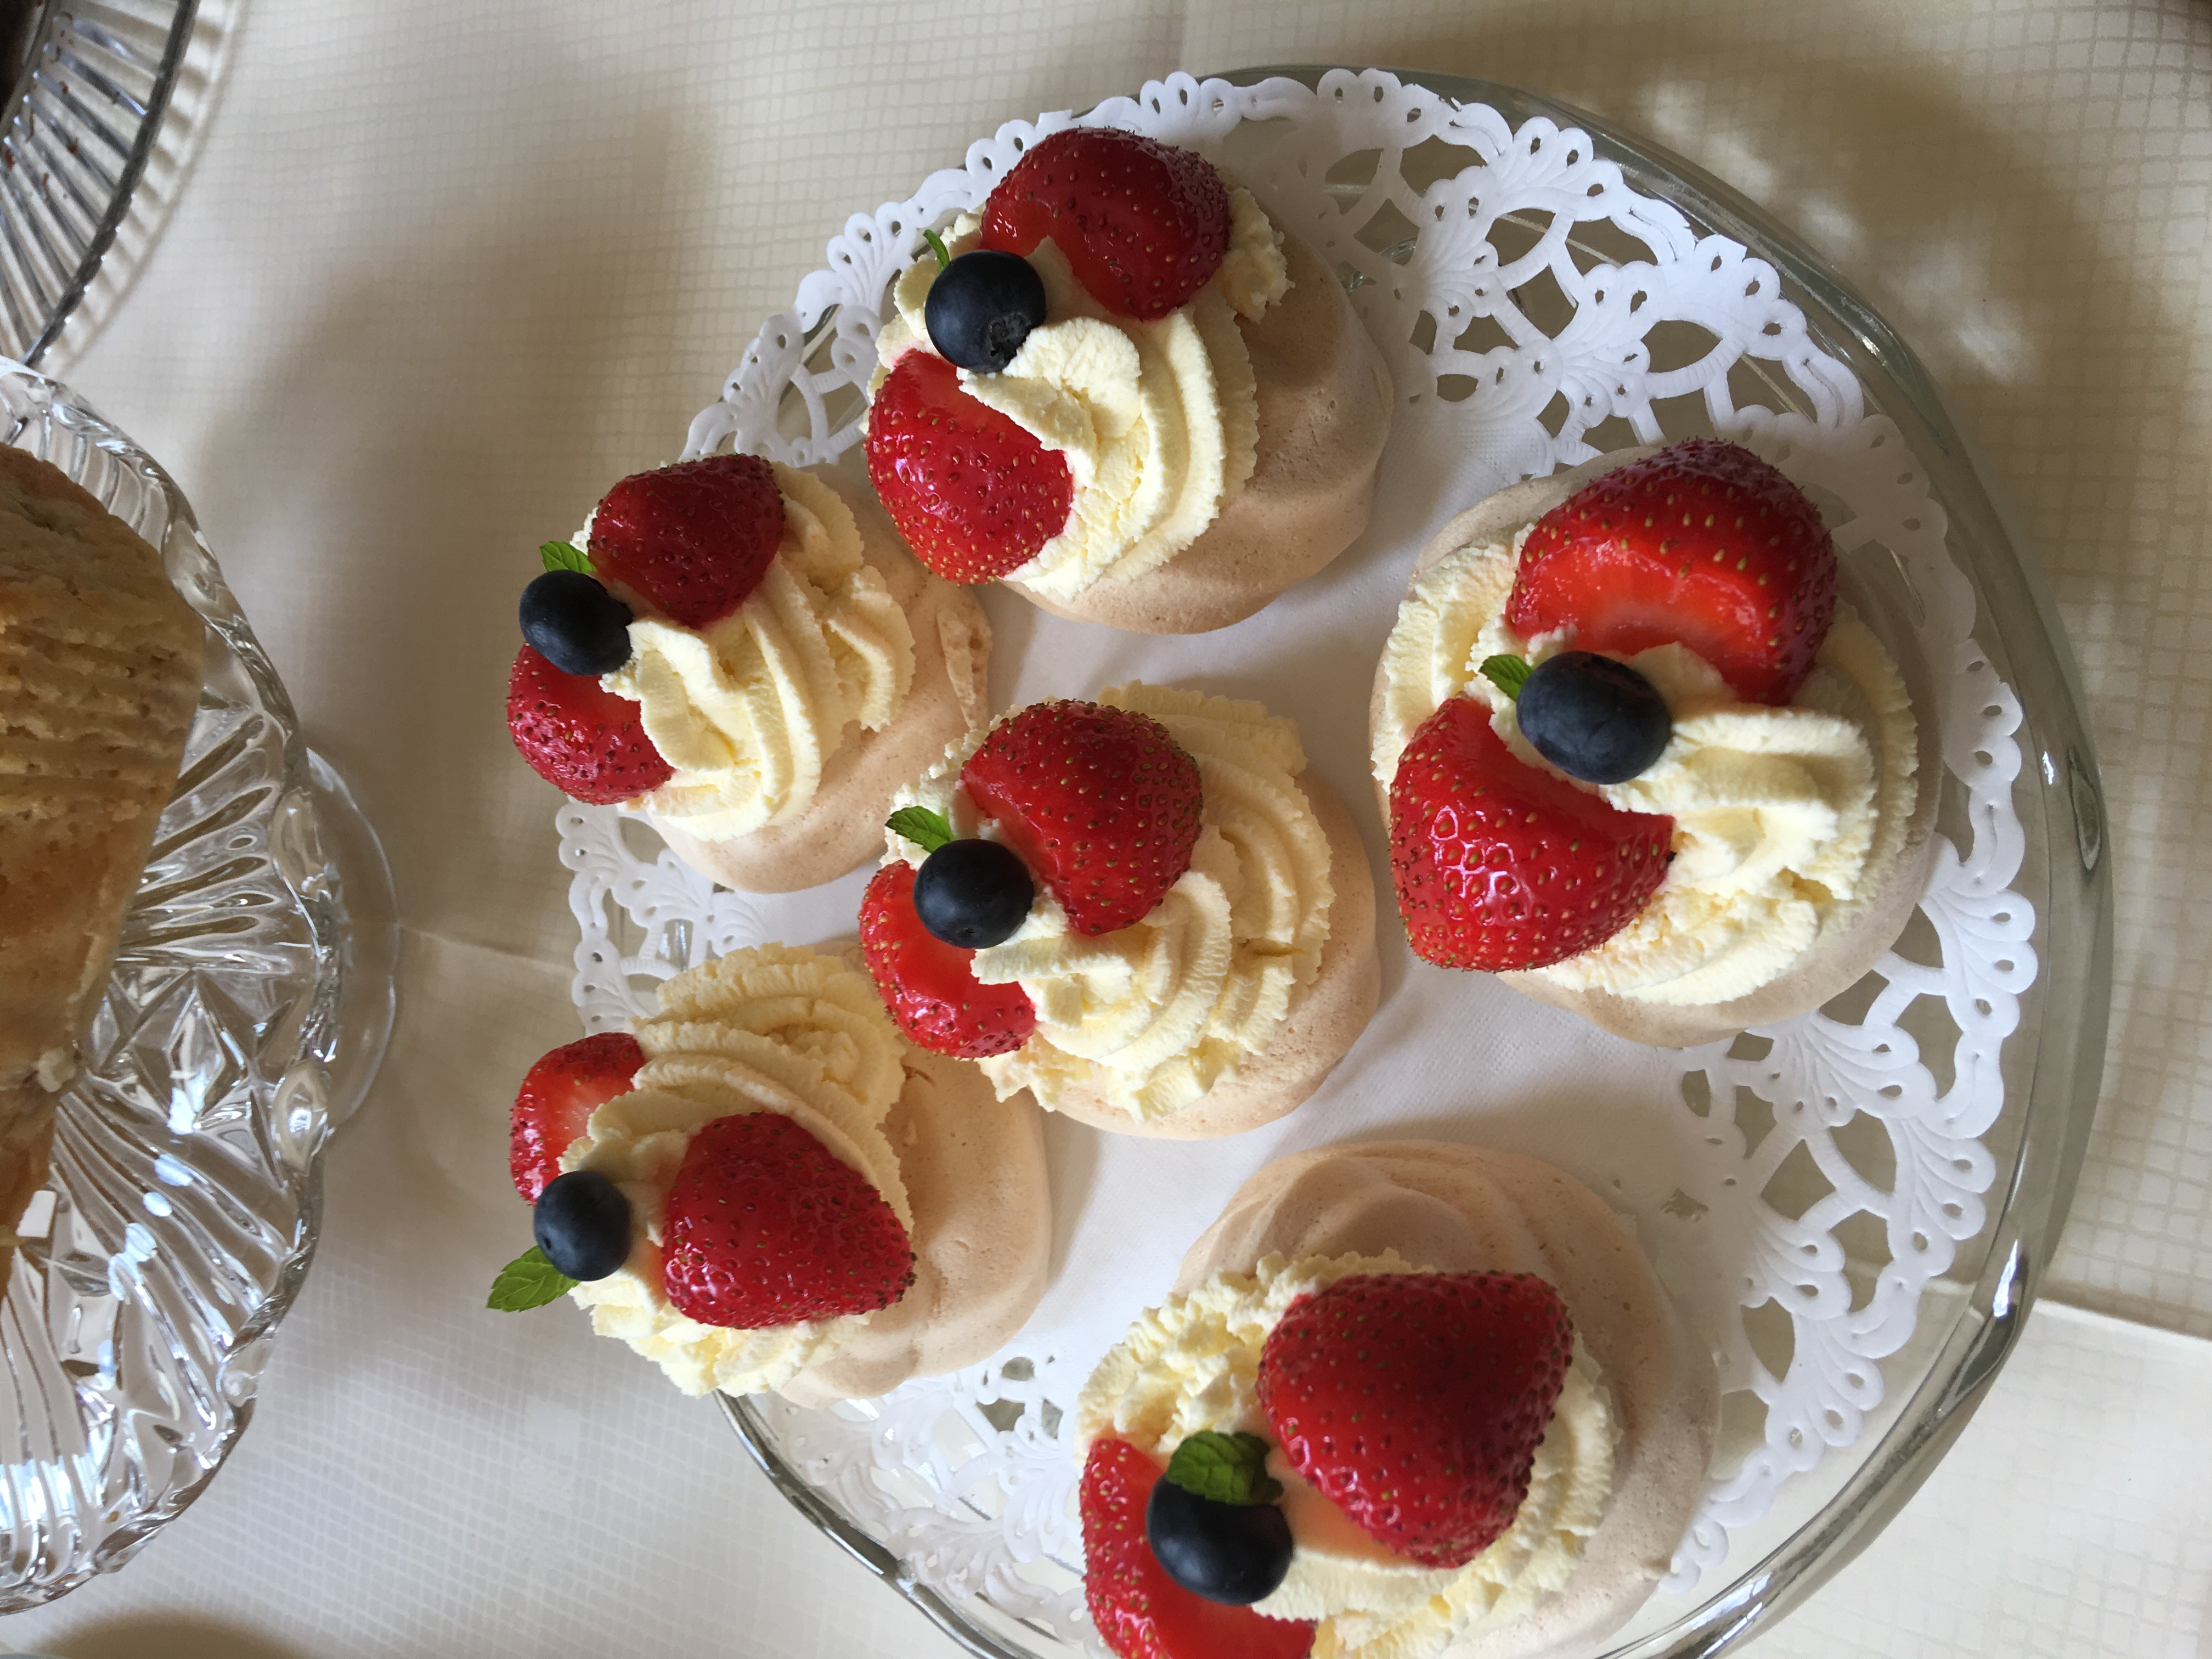 meringues and fresh fruit